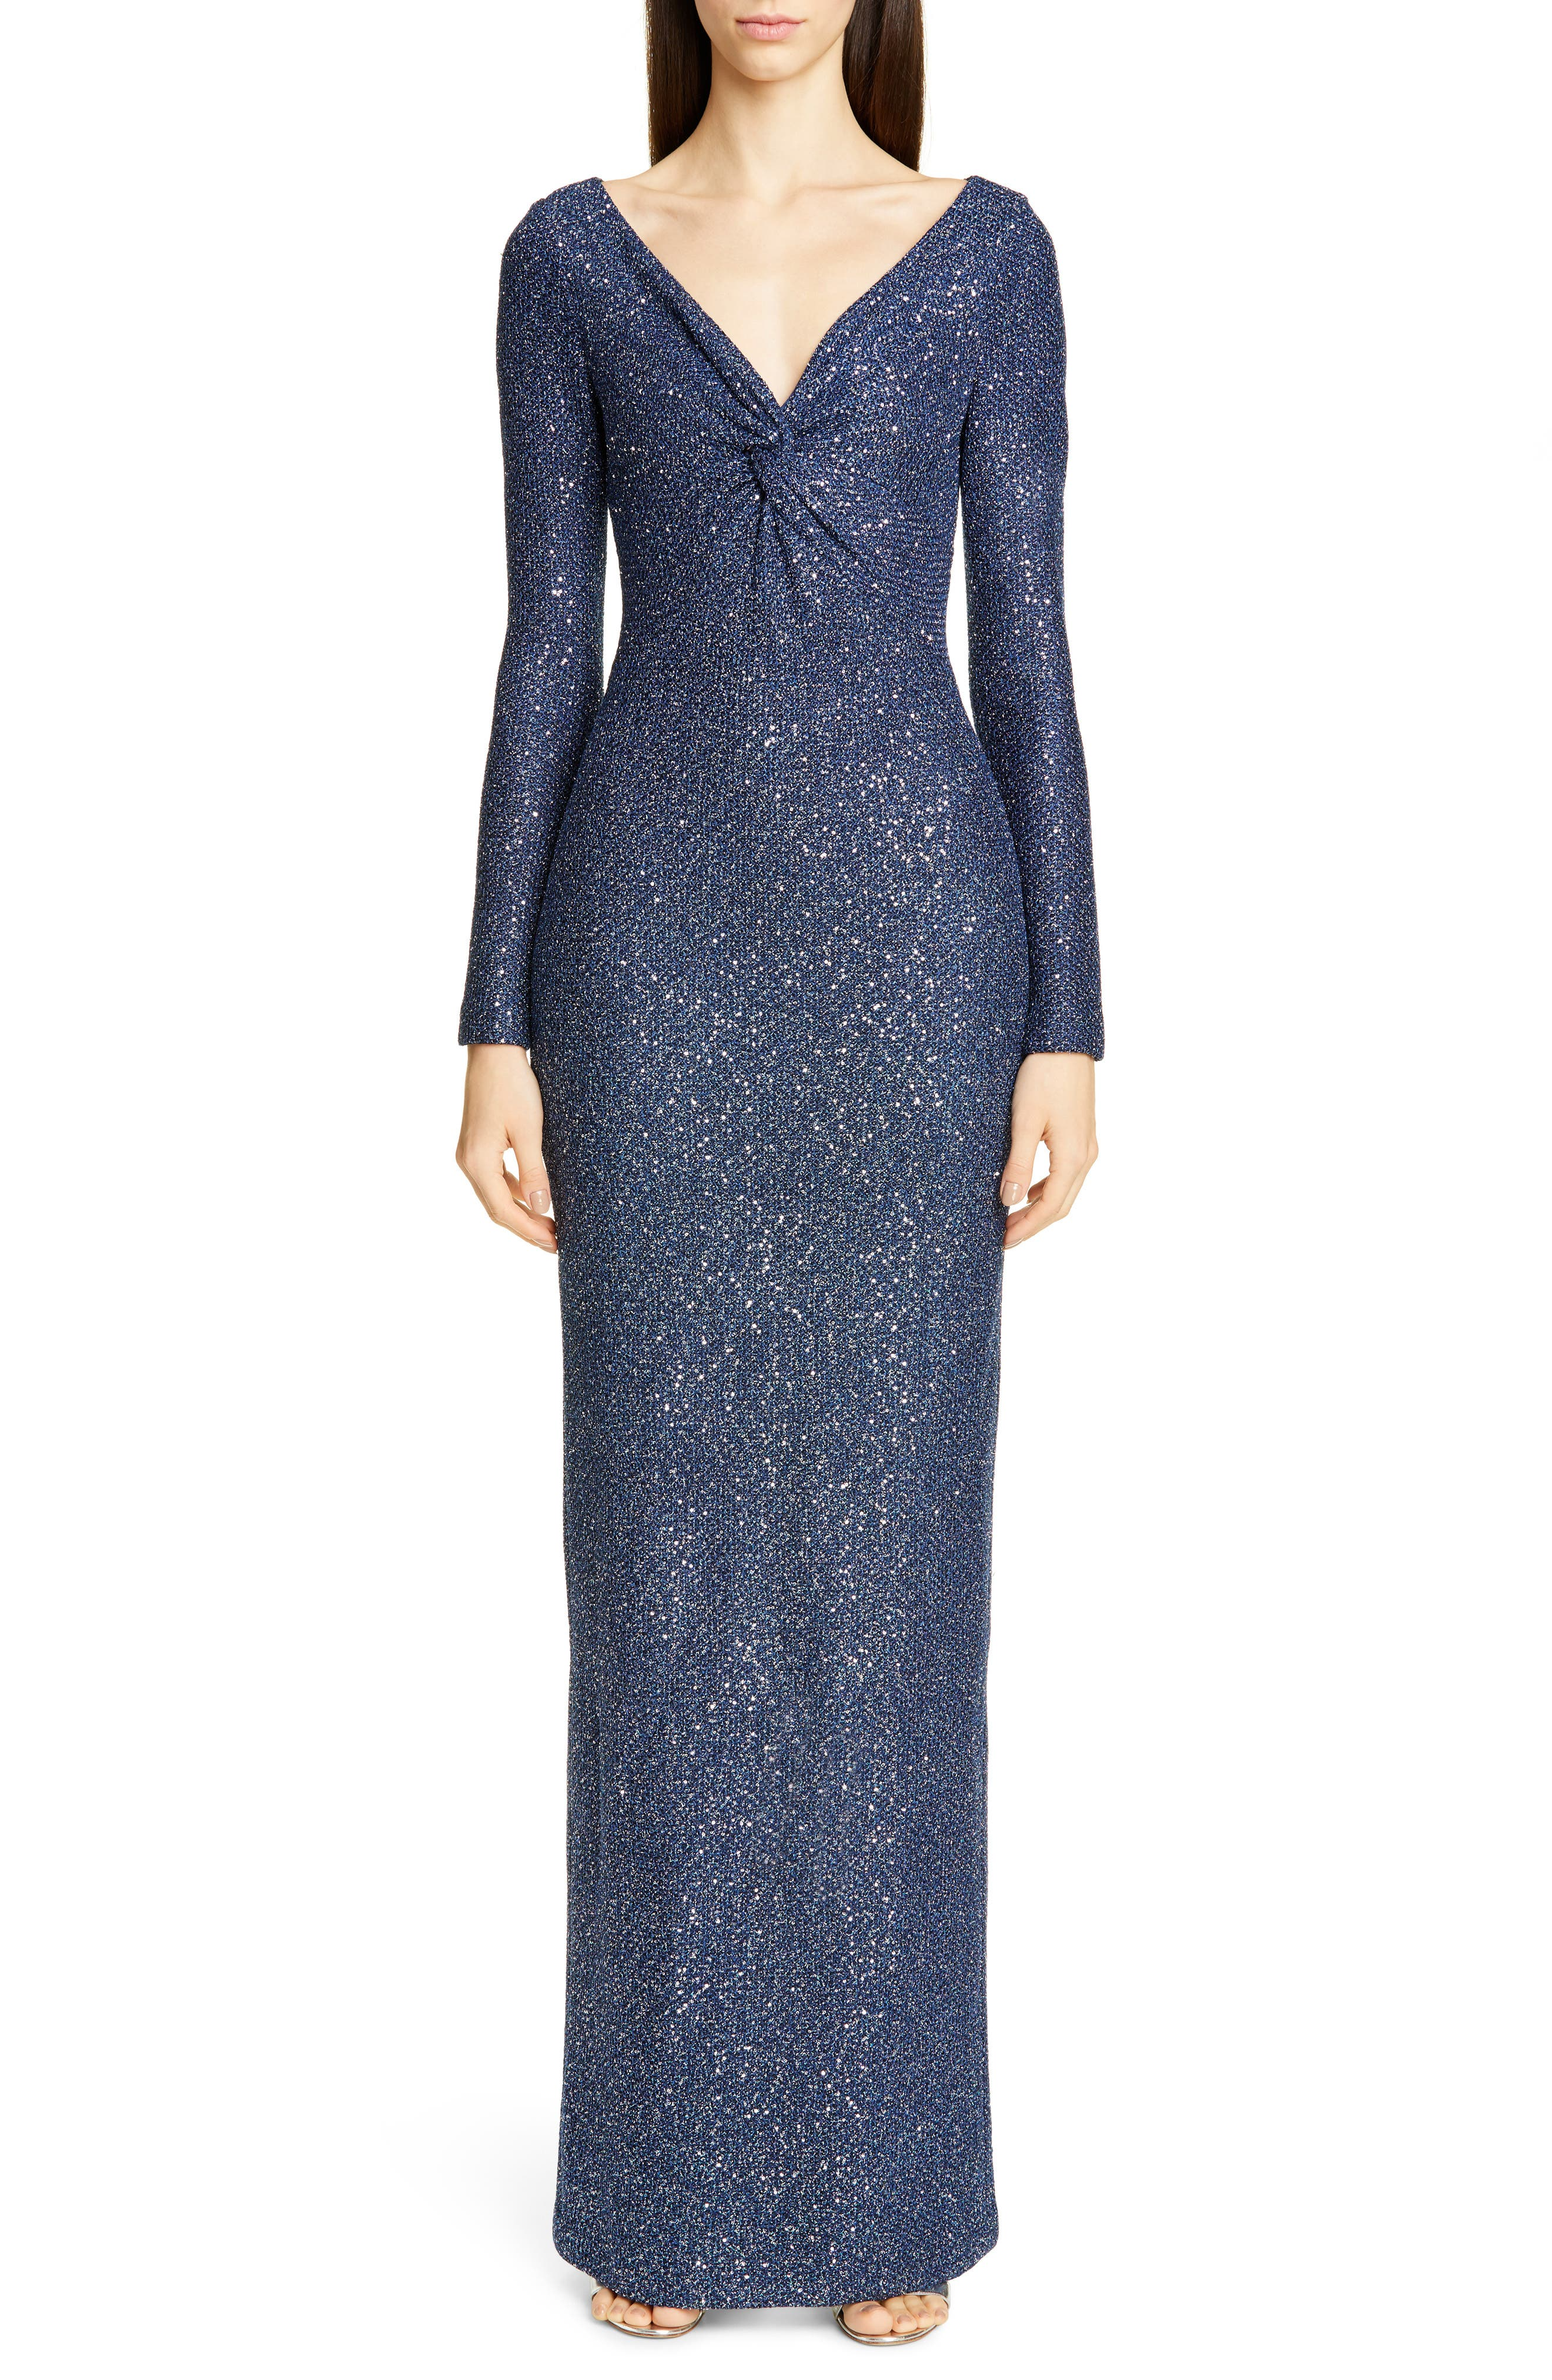 St. John Collection Long Sleeve Luxe Sequin Tuck Knit Gown, Blue